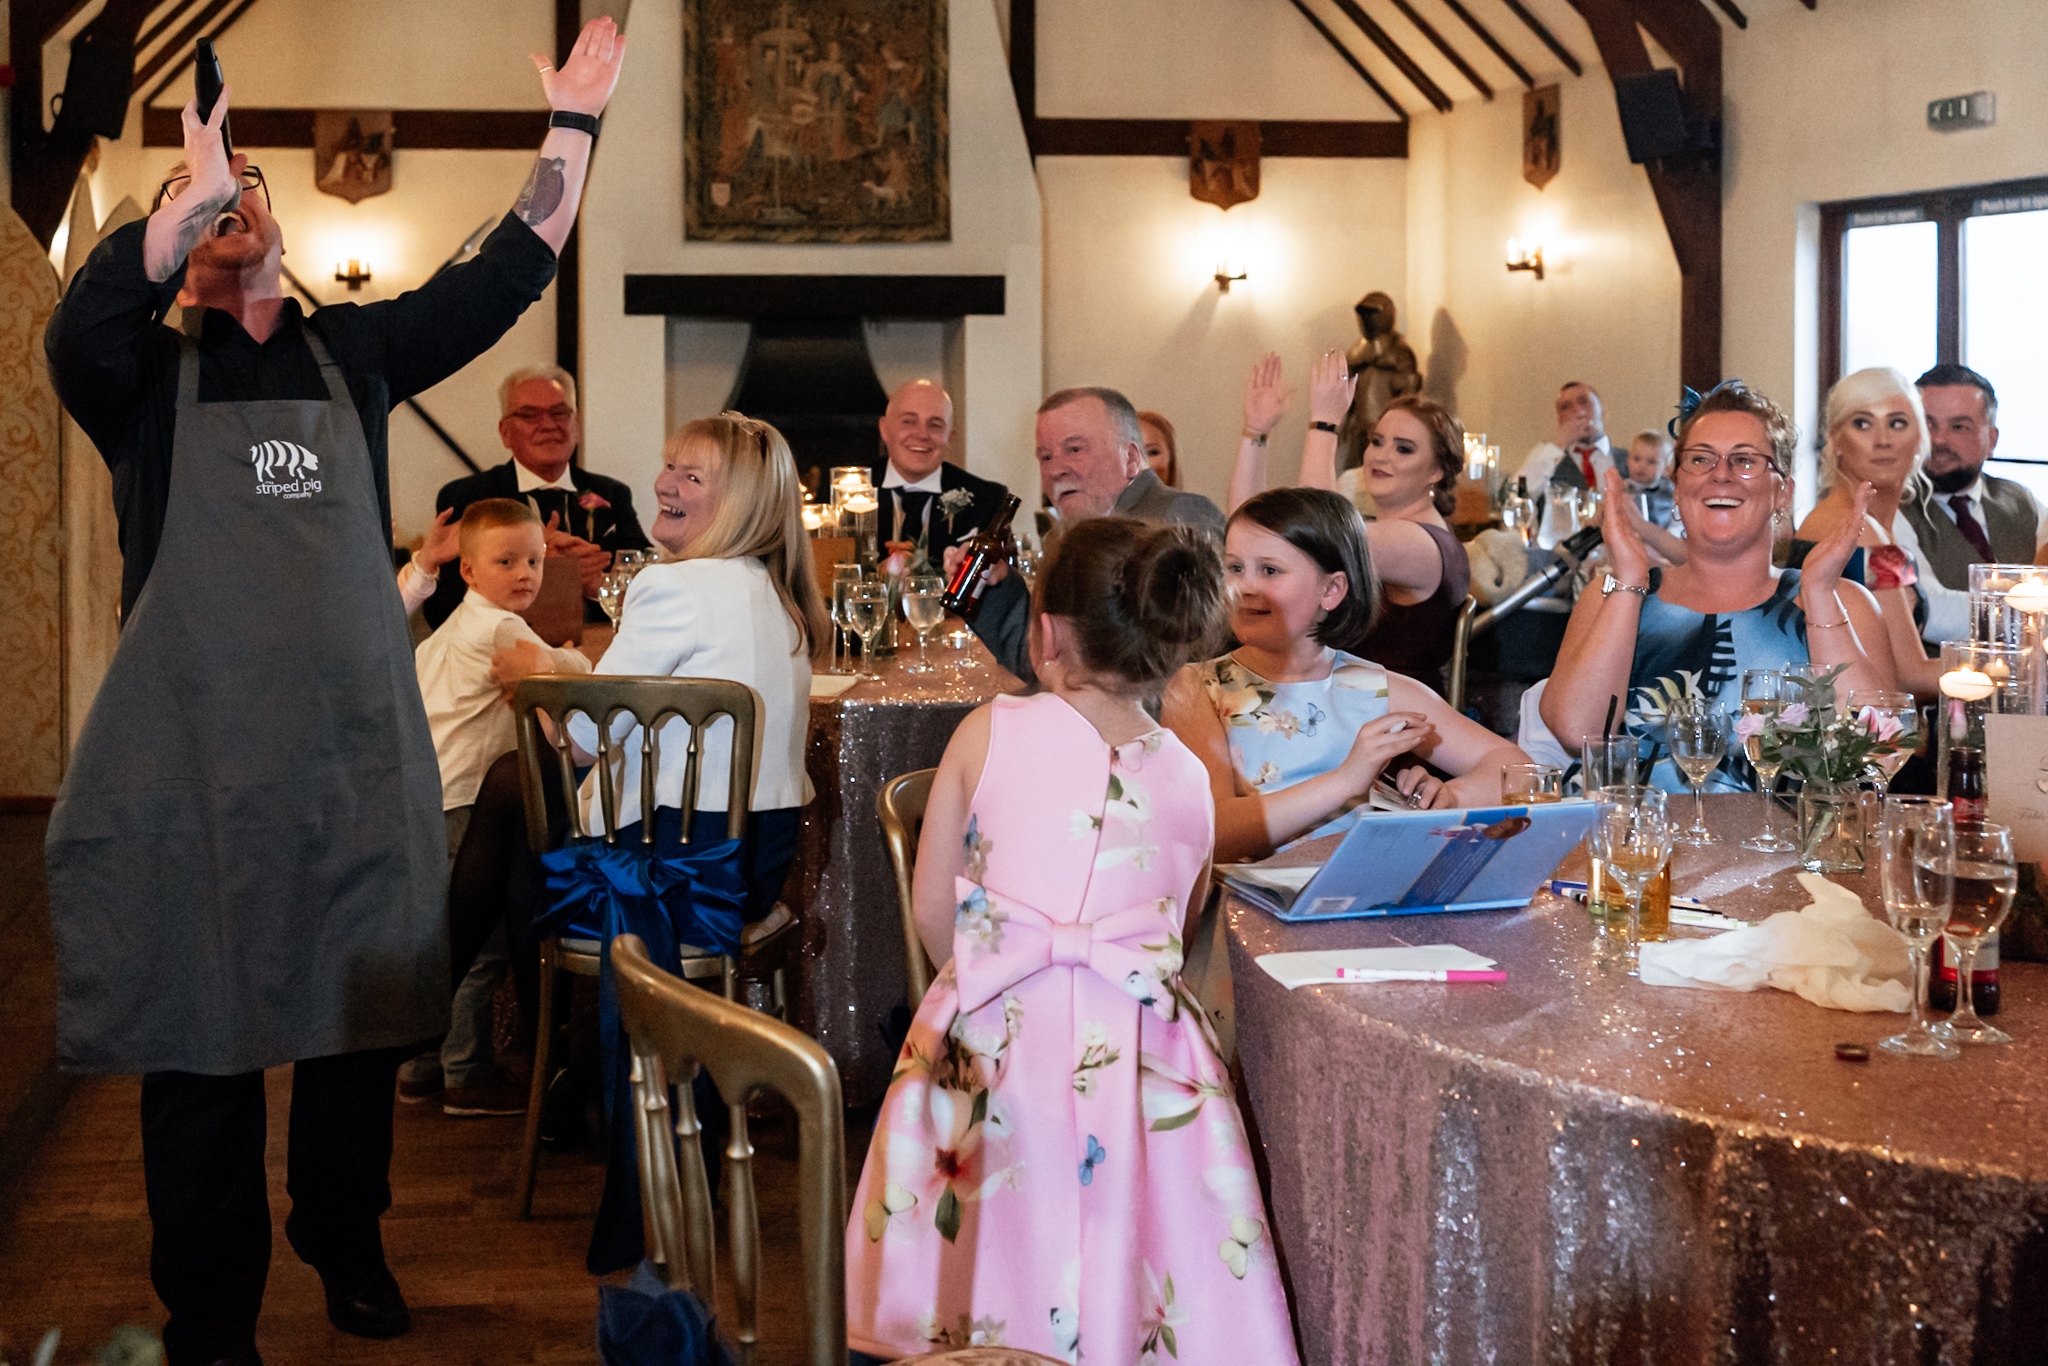 Real moment wedding photography Great Hall At Mains